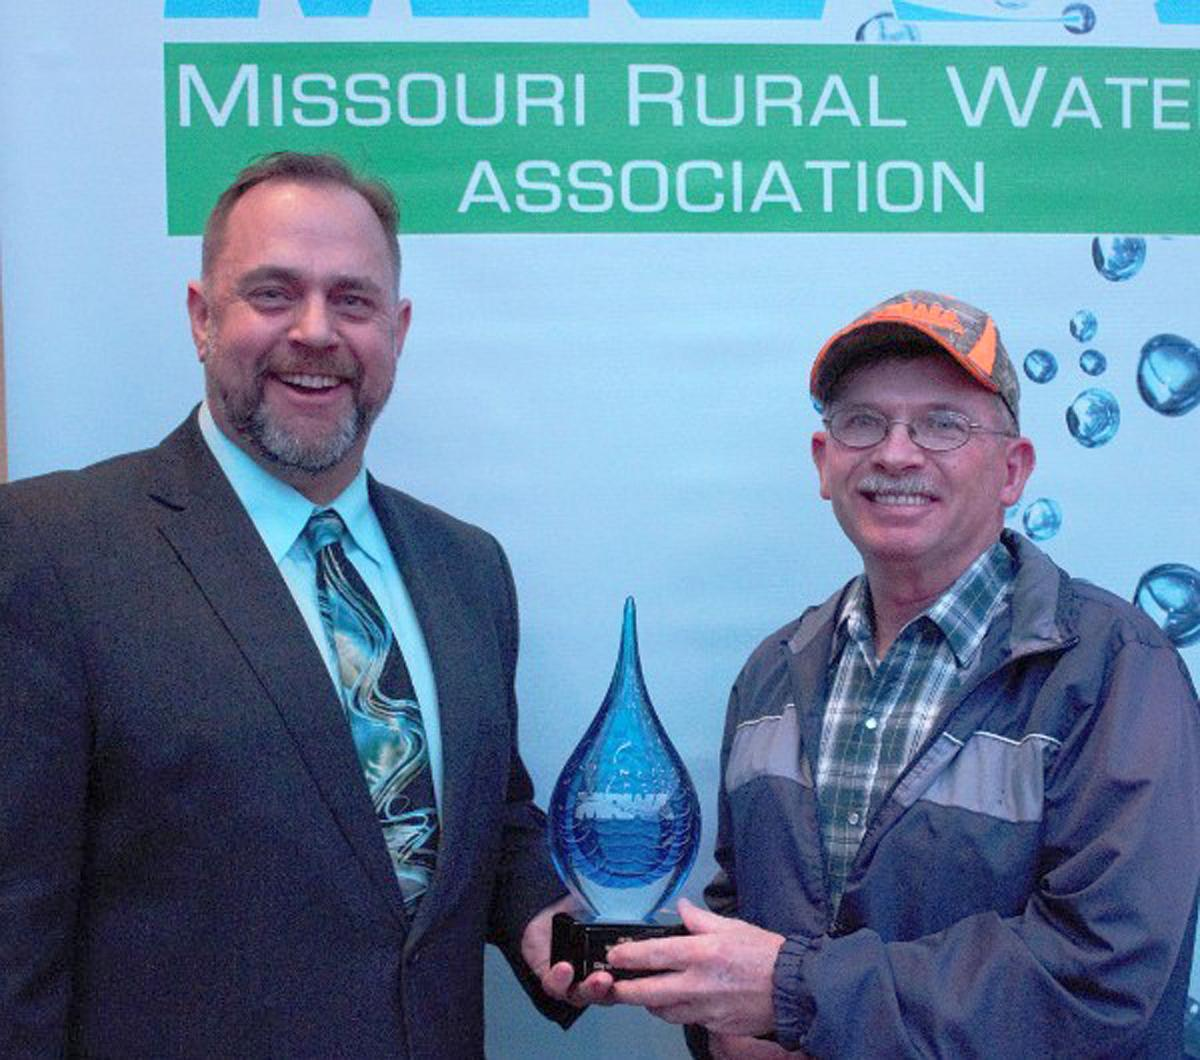 Fredericktown receives MRWA Waster System of the Year award